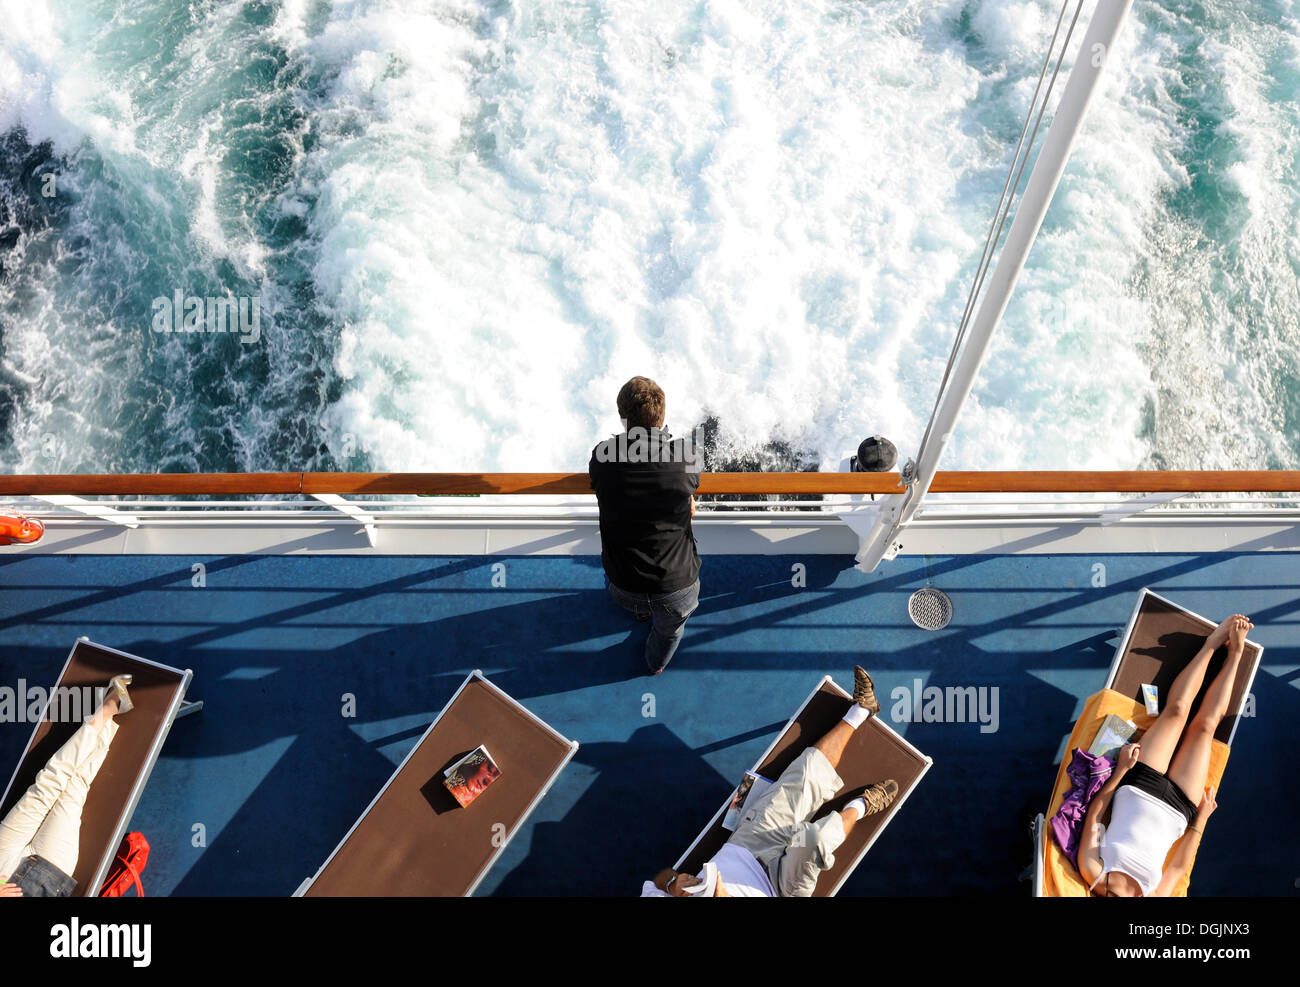 Passengers on a cruise, relaxation - Stock Image